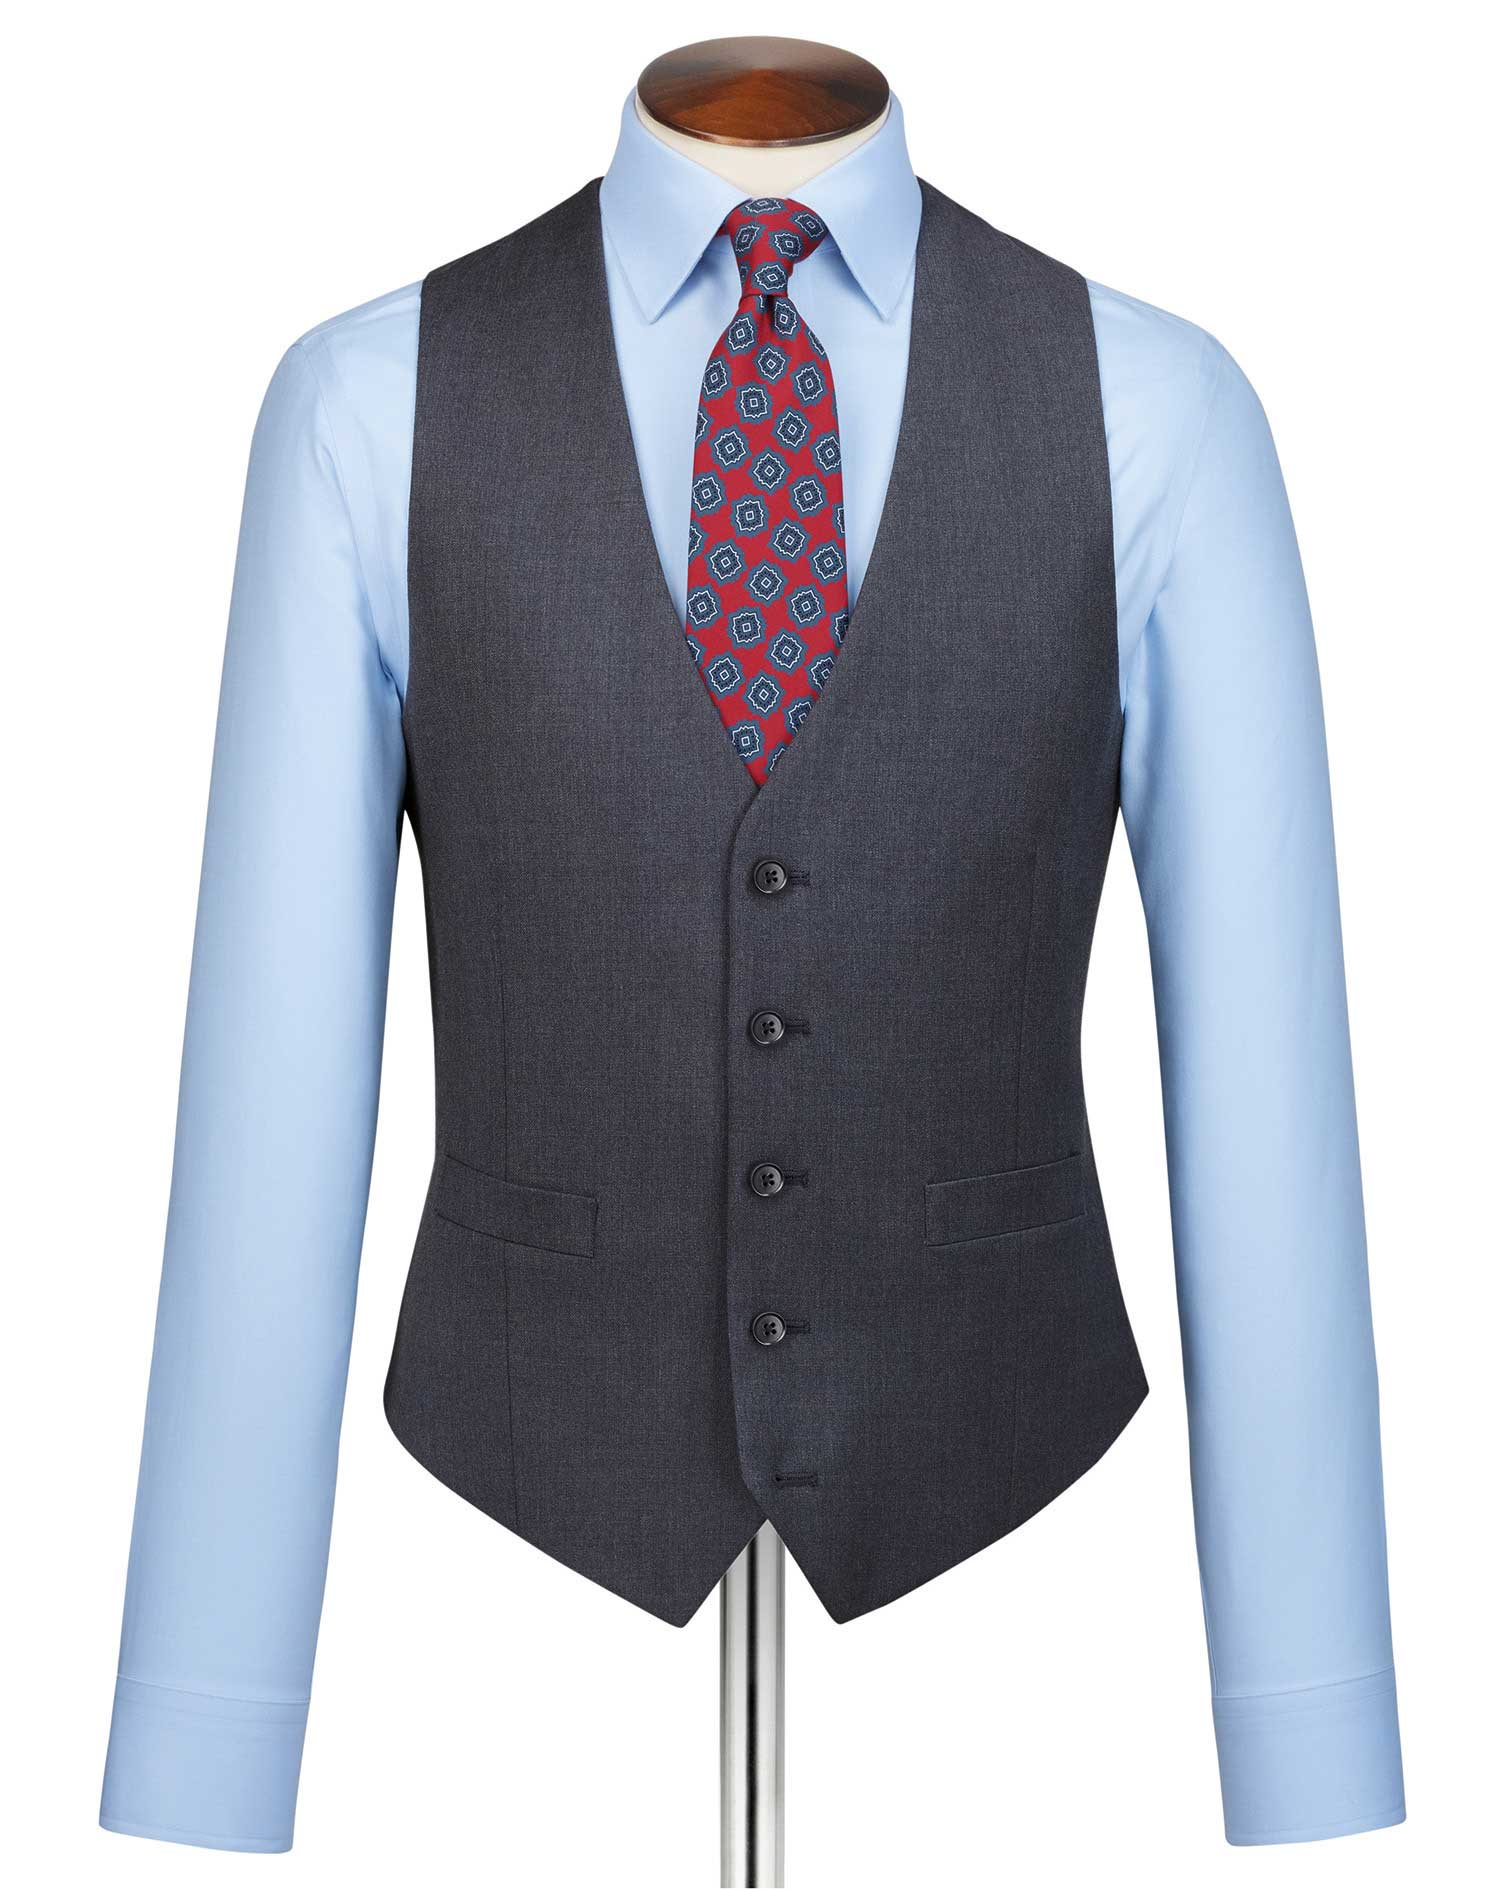 Steel Blue Adjustable Fit Twill Business Suit Wool Waistcoat Size w36 by Charles Tyrwhitt